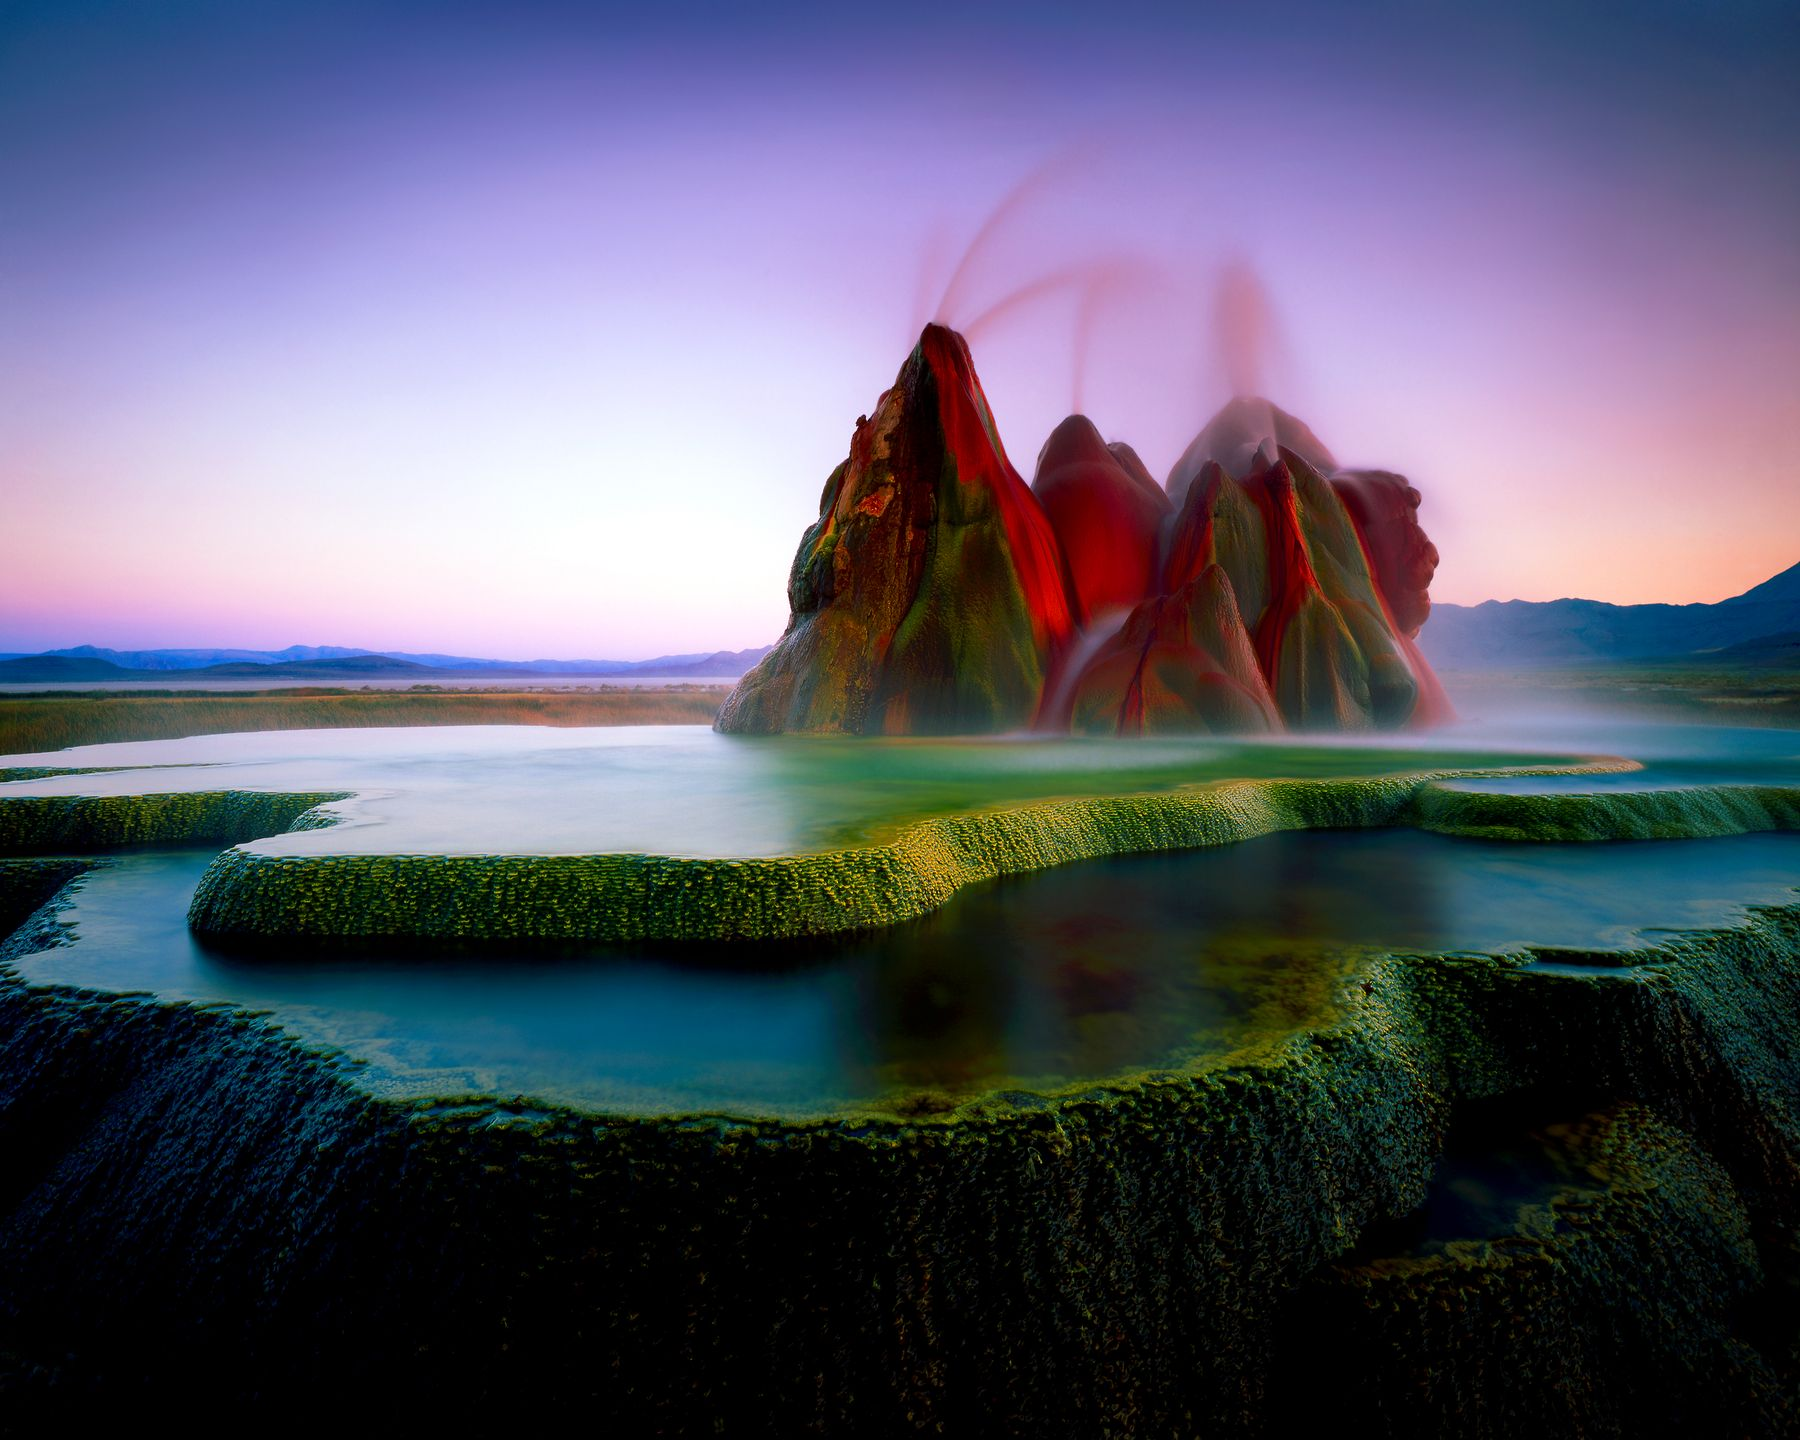 Fly Geyser in Nevada, USA - 10 amazing natural wonders of the world